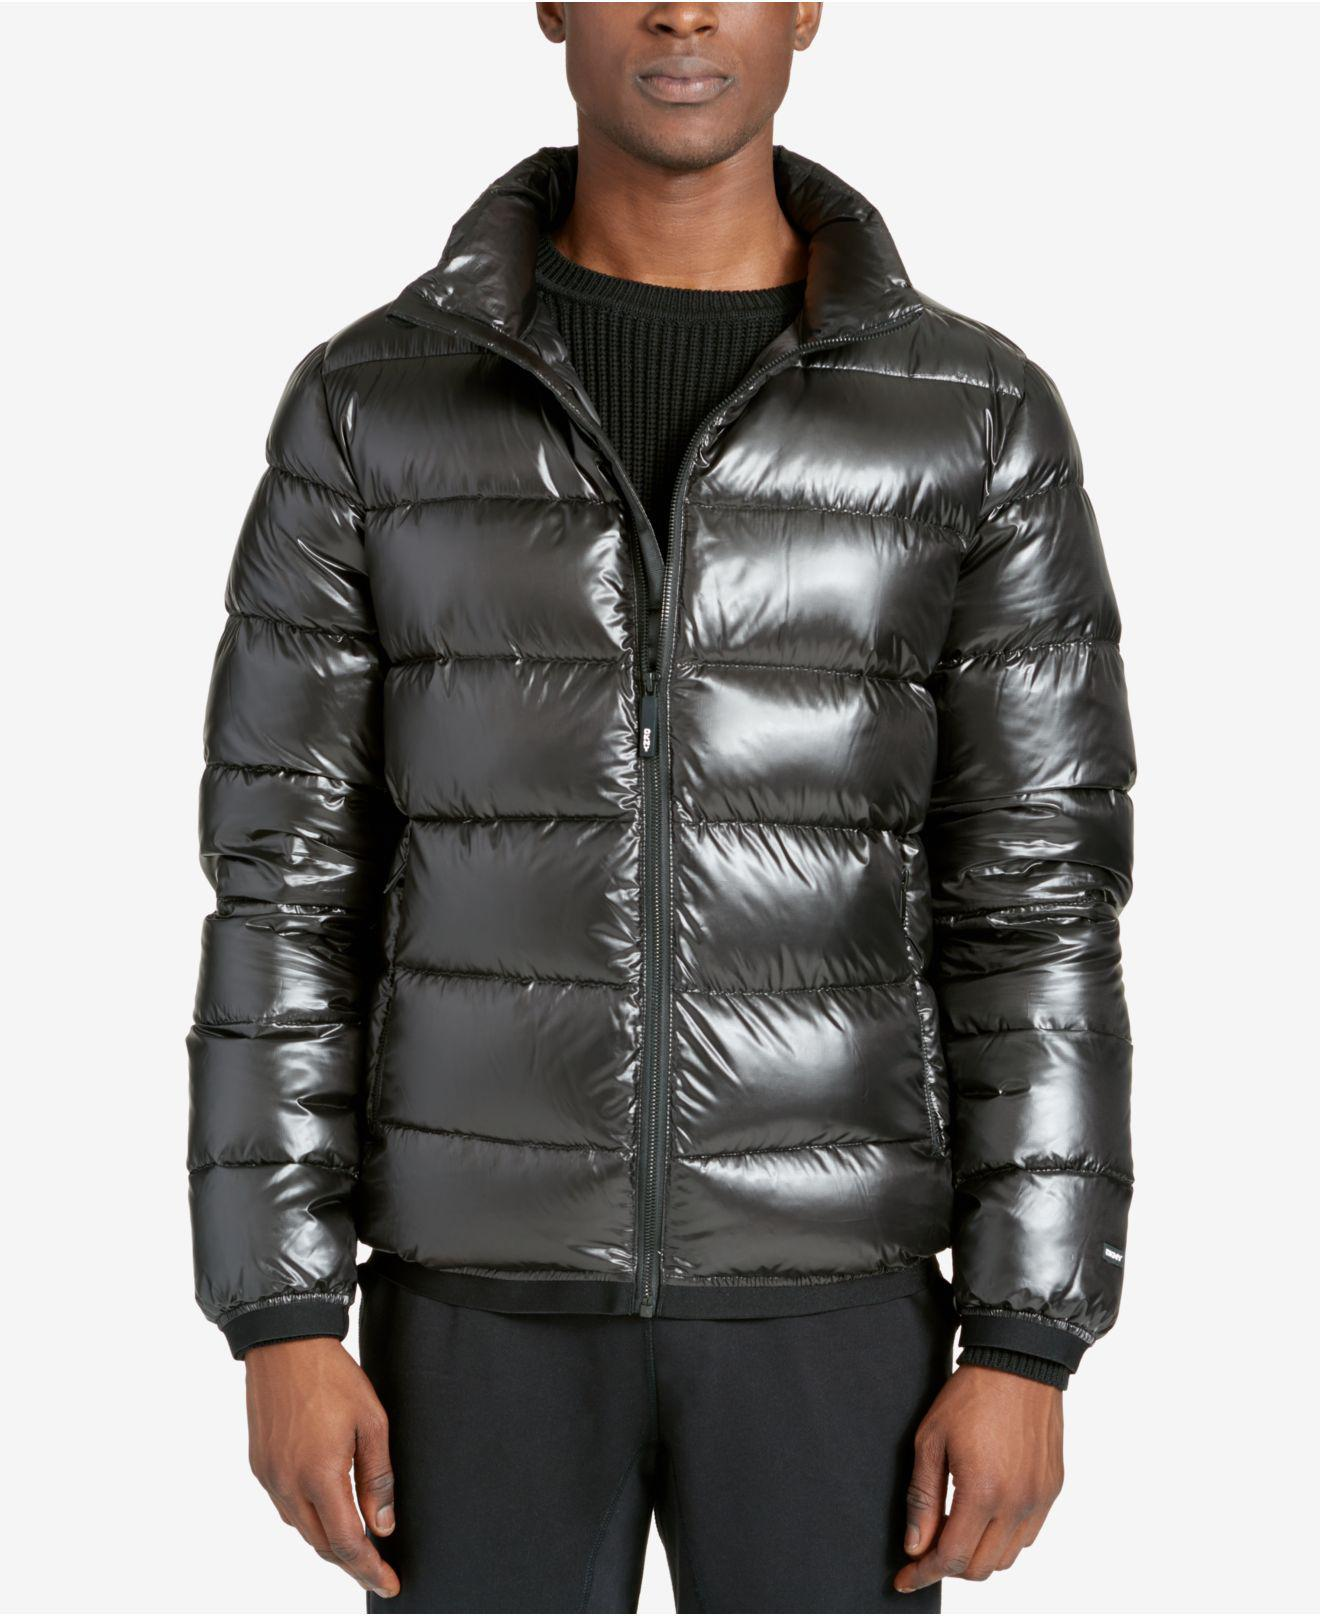 Discover men's jackets & coats on sale at ASOS. Choose from the latest collection of jackets & coats for men and shop your favourite items on sale. D-Struct Quilted lightweight hooded puffer gilet fine nylon. ASOS DESIGN muscle jersey track jacket in black with contrast tipping.